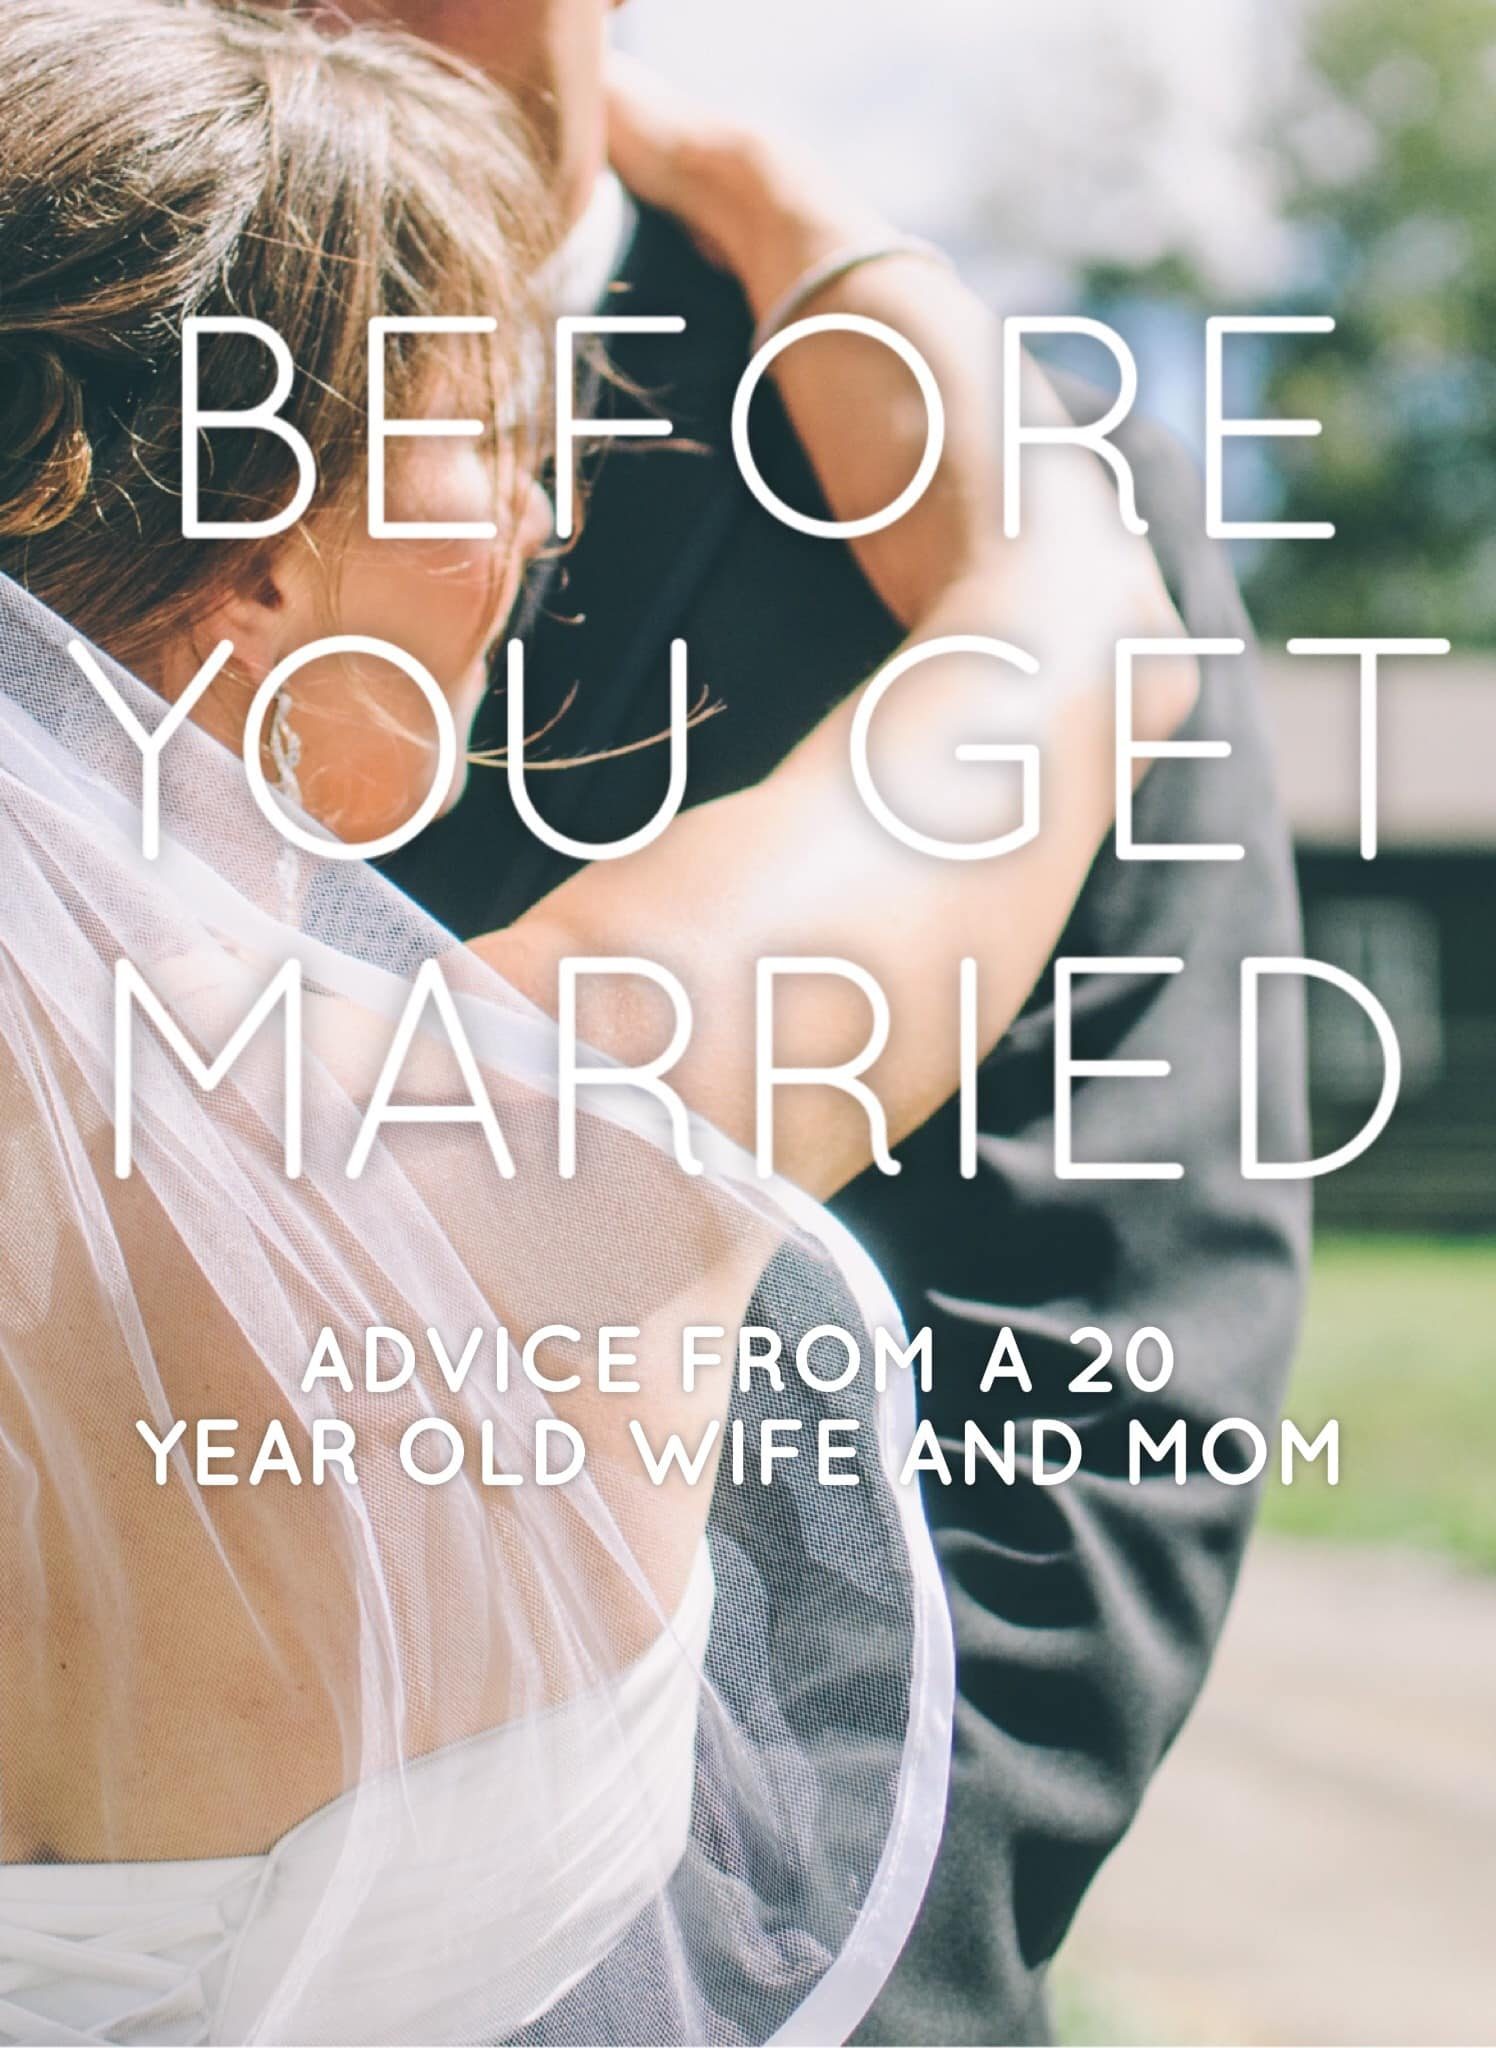 Before You Get Married: Advice from a 20 Year Old Wife and Mom